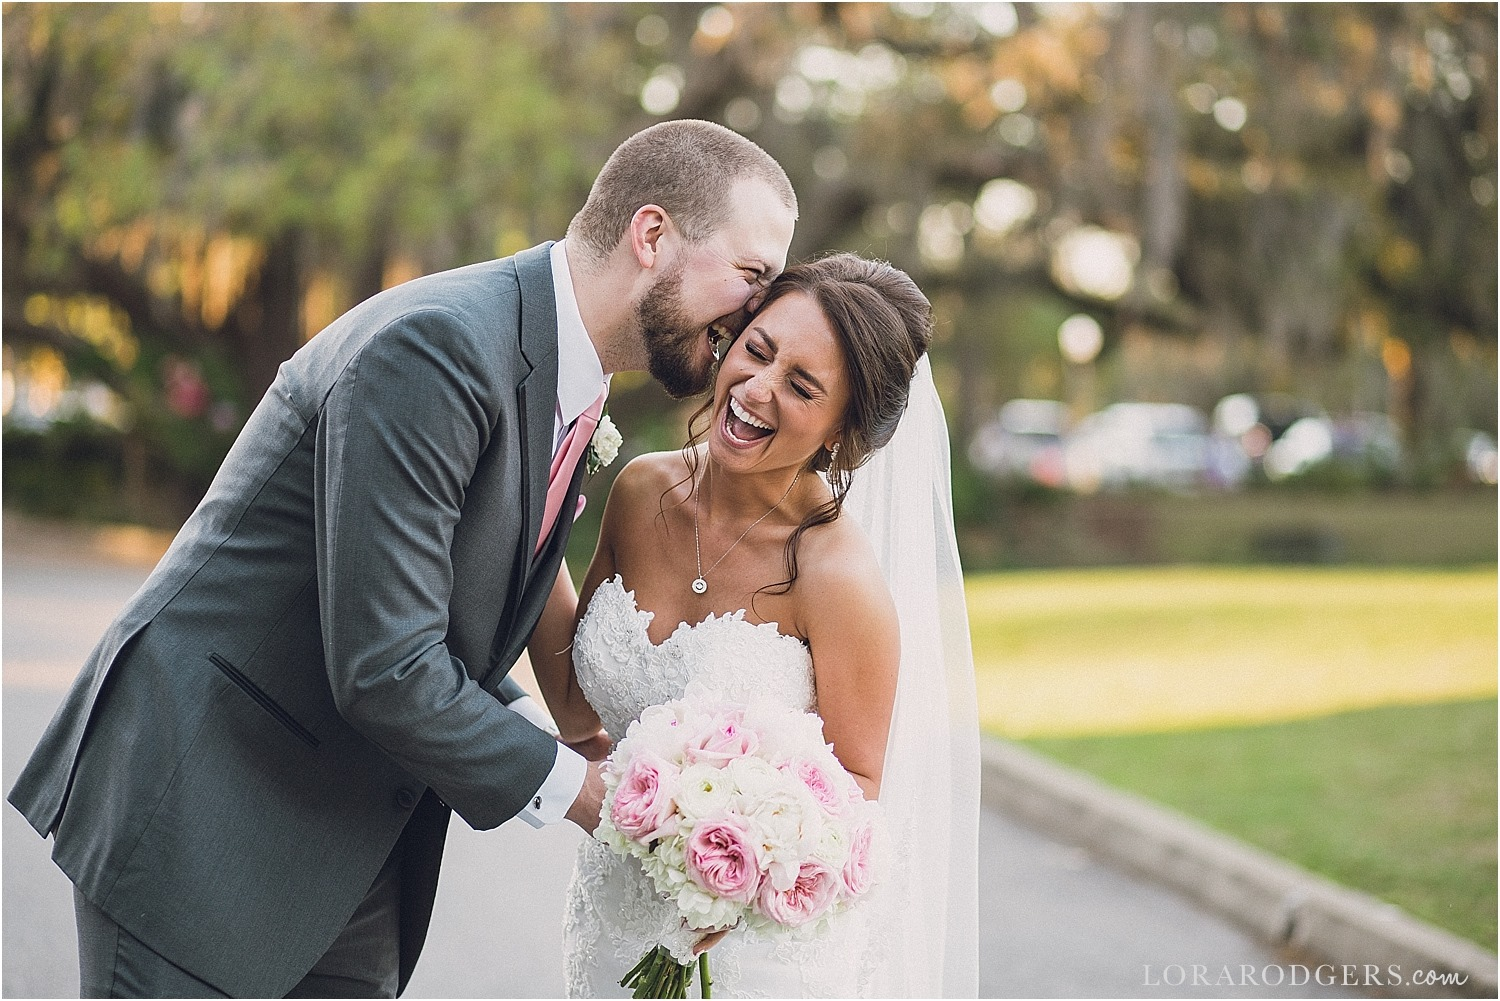 groom whispering in bride's ear as she laughs